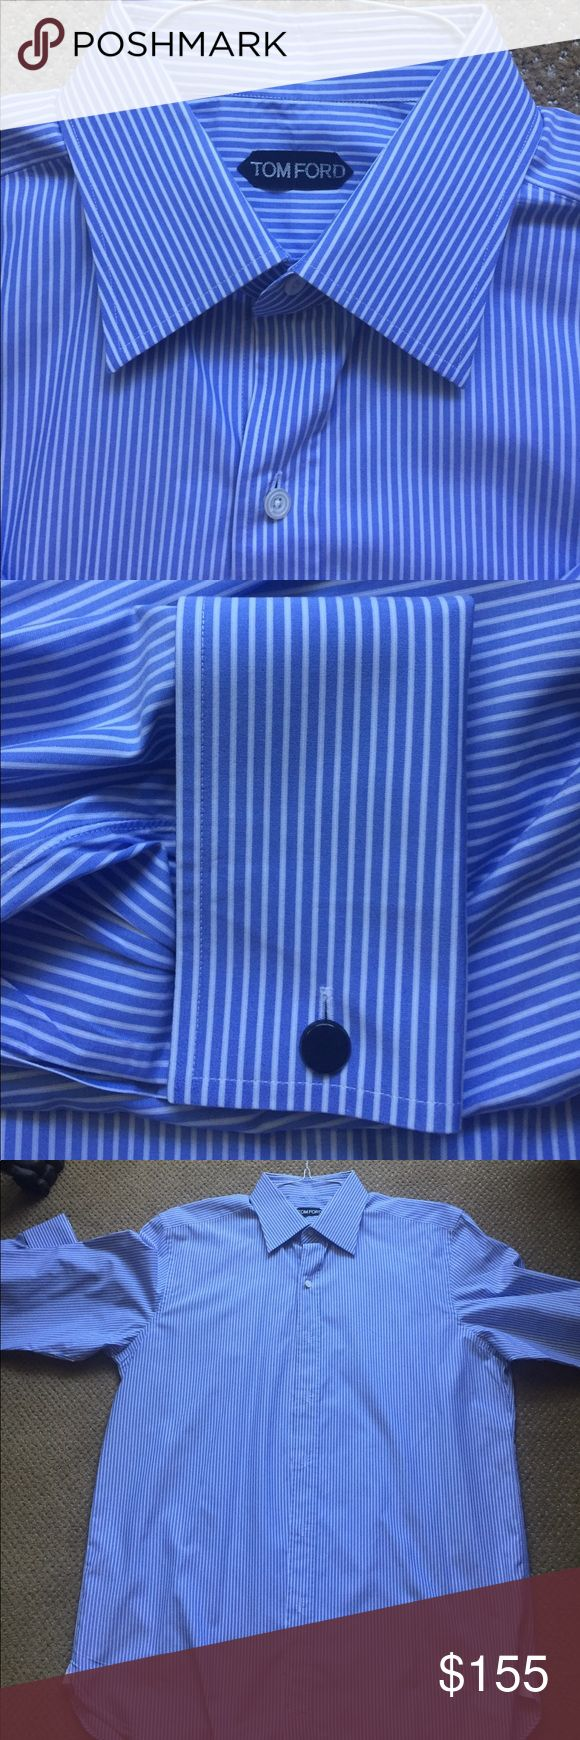 """Tom Ford size 17 blue/white French Cuff shirt Tom Ford French Cuff dress shirt. Size 17/43. Made in Italy from ultra luxurious 100% cotton in classic blue/white stripe. Forward-point collar; button front placket. Sizing: chest 44""""-46"""", neck 17"""", sleeve 35""""-36"""". This is considered an XL. TOM FORD is synonymous with sexy, timeless elegance, superior materials and workmanship. This shirt has hardly been worn & has no holes, stains or visible imperfections. Lowball offers will be rejected. Tom…"""